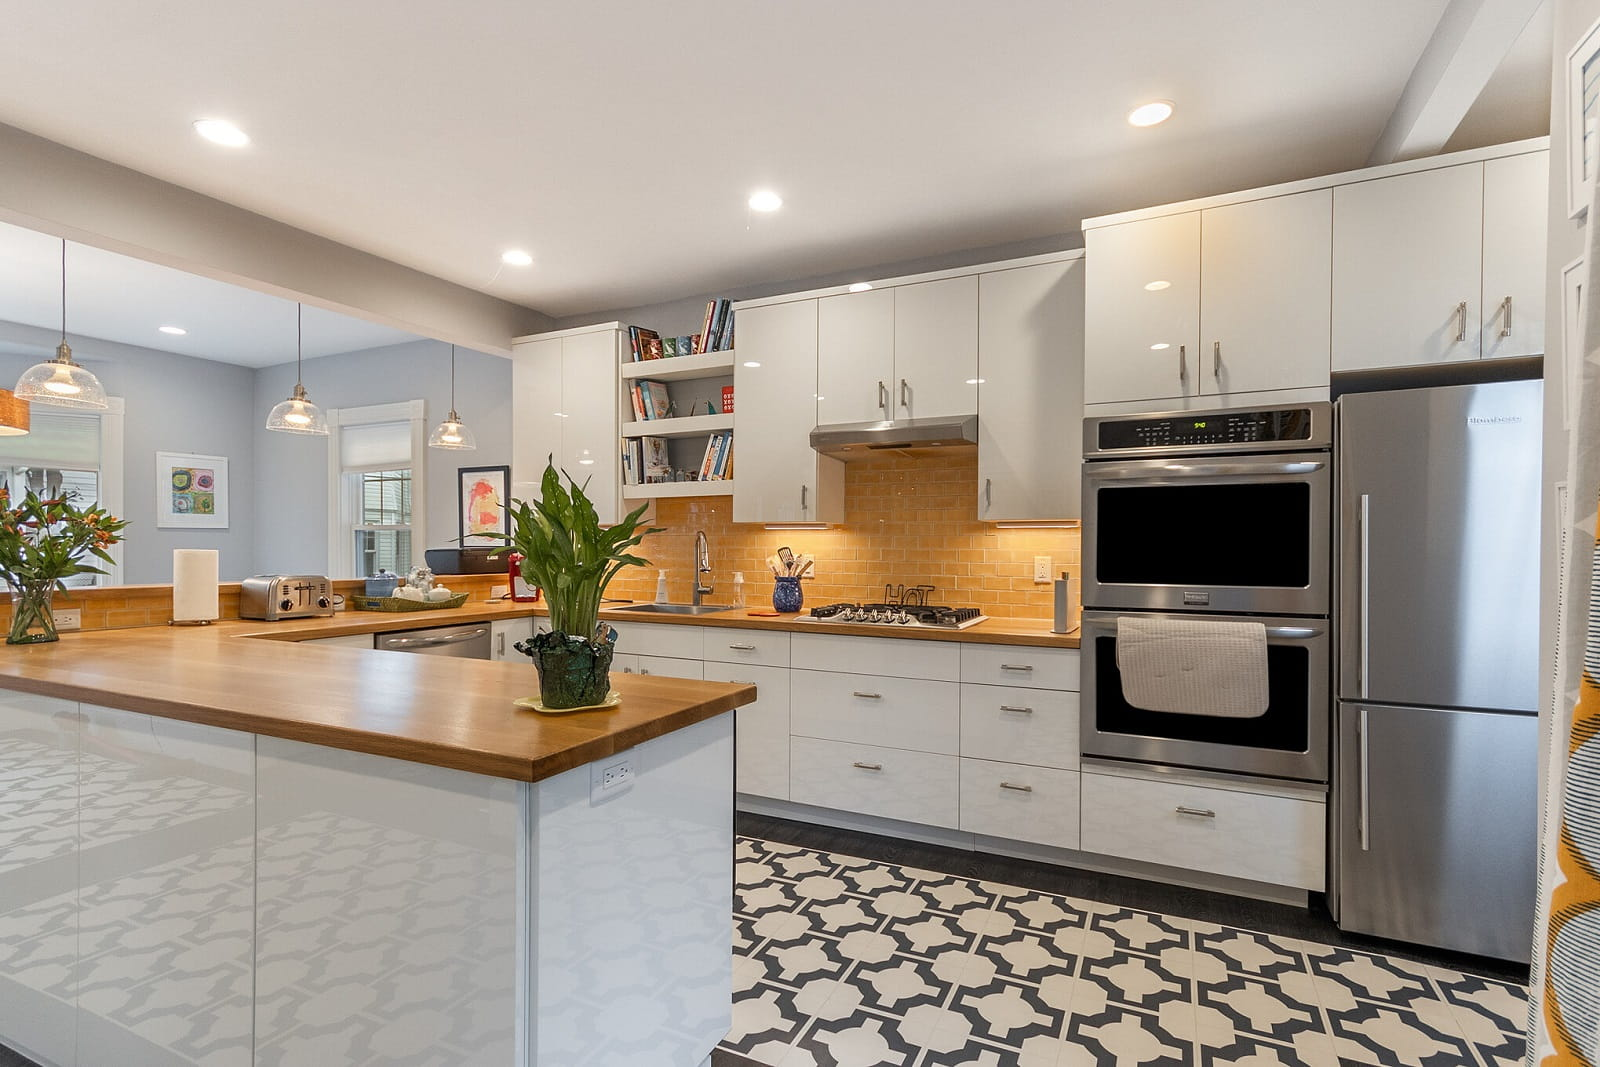 Real Estate Photography in Cambridge - MA - USA - Kitchen View